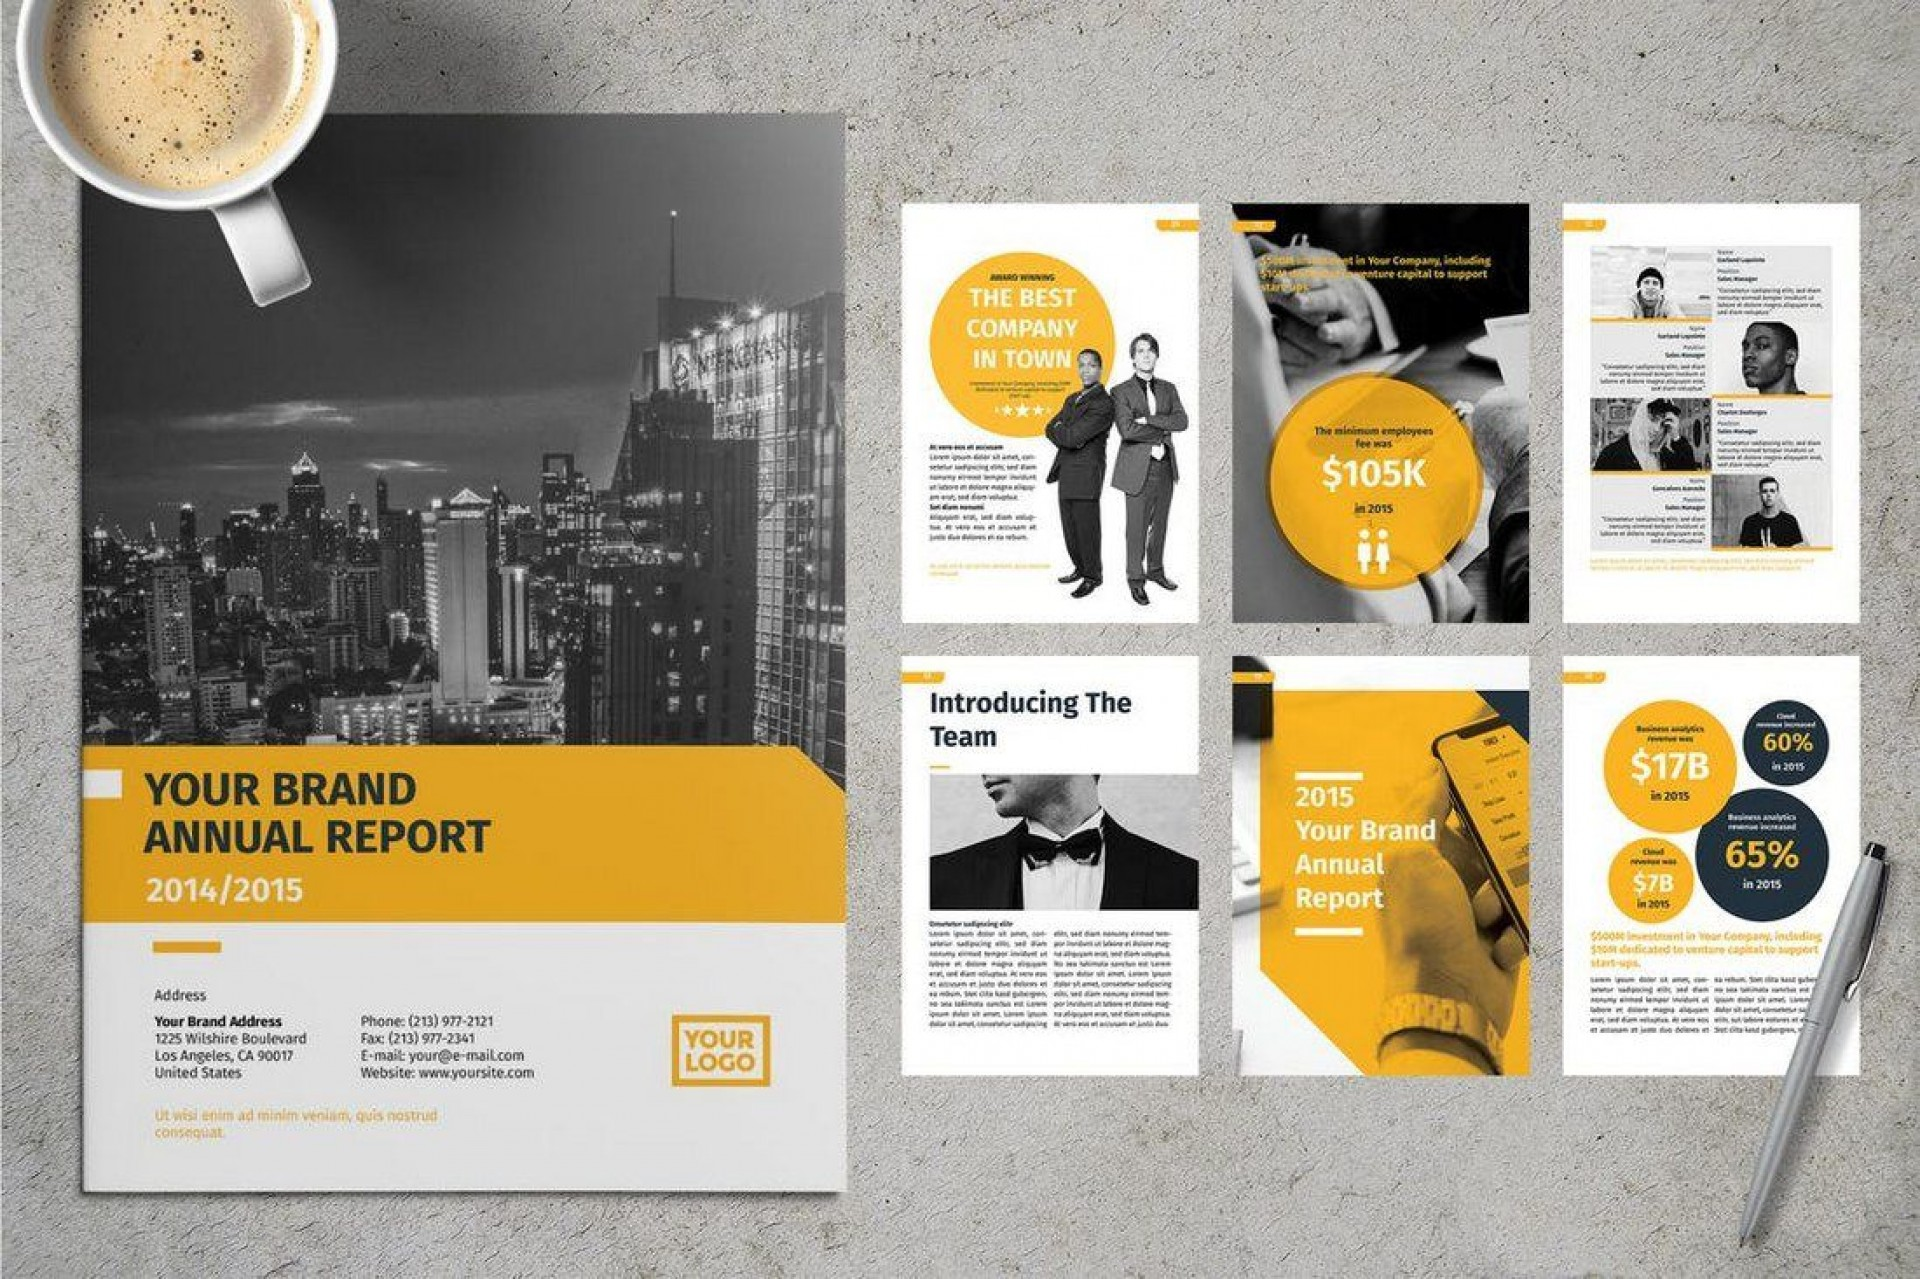 009 Incredible Free Annual Report Template Indesign High Def  Adobe Non Profit1920